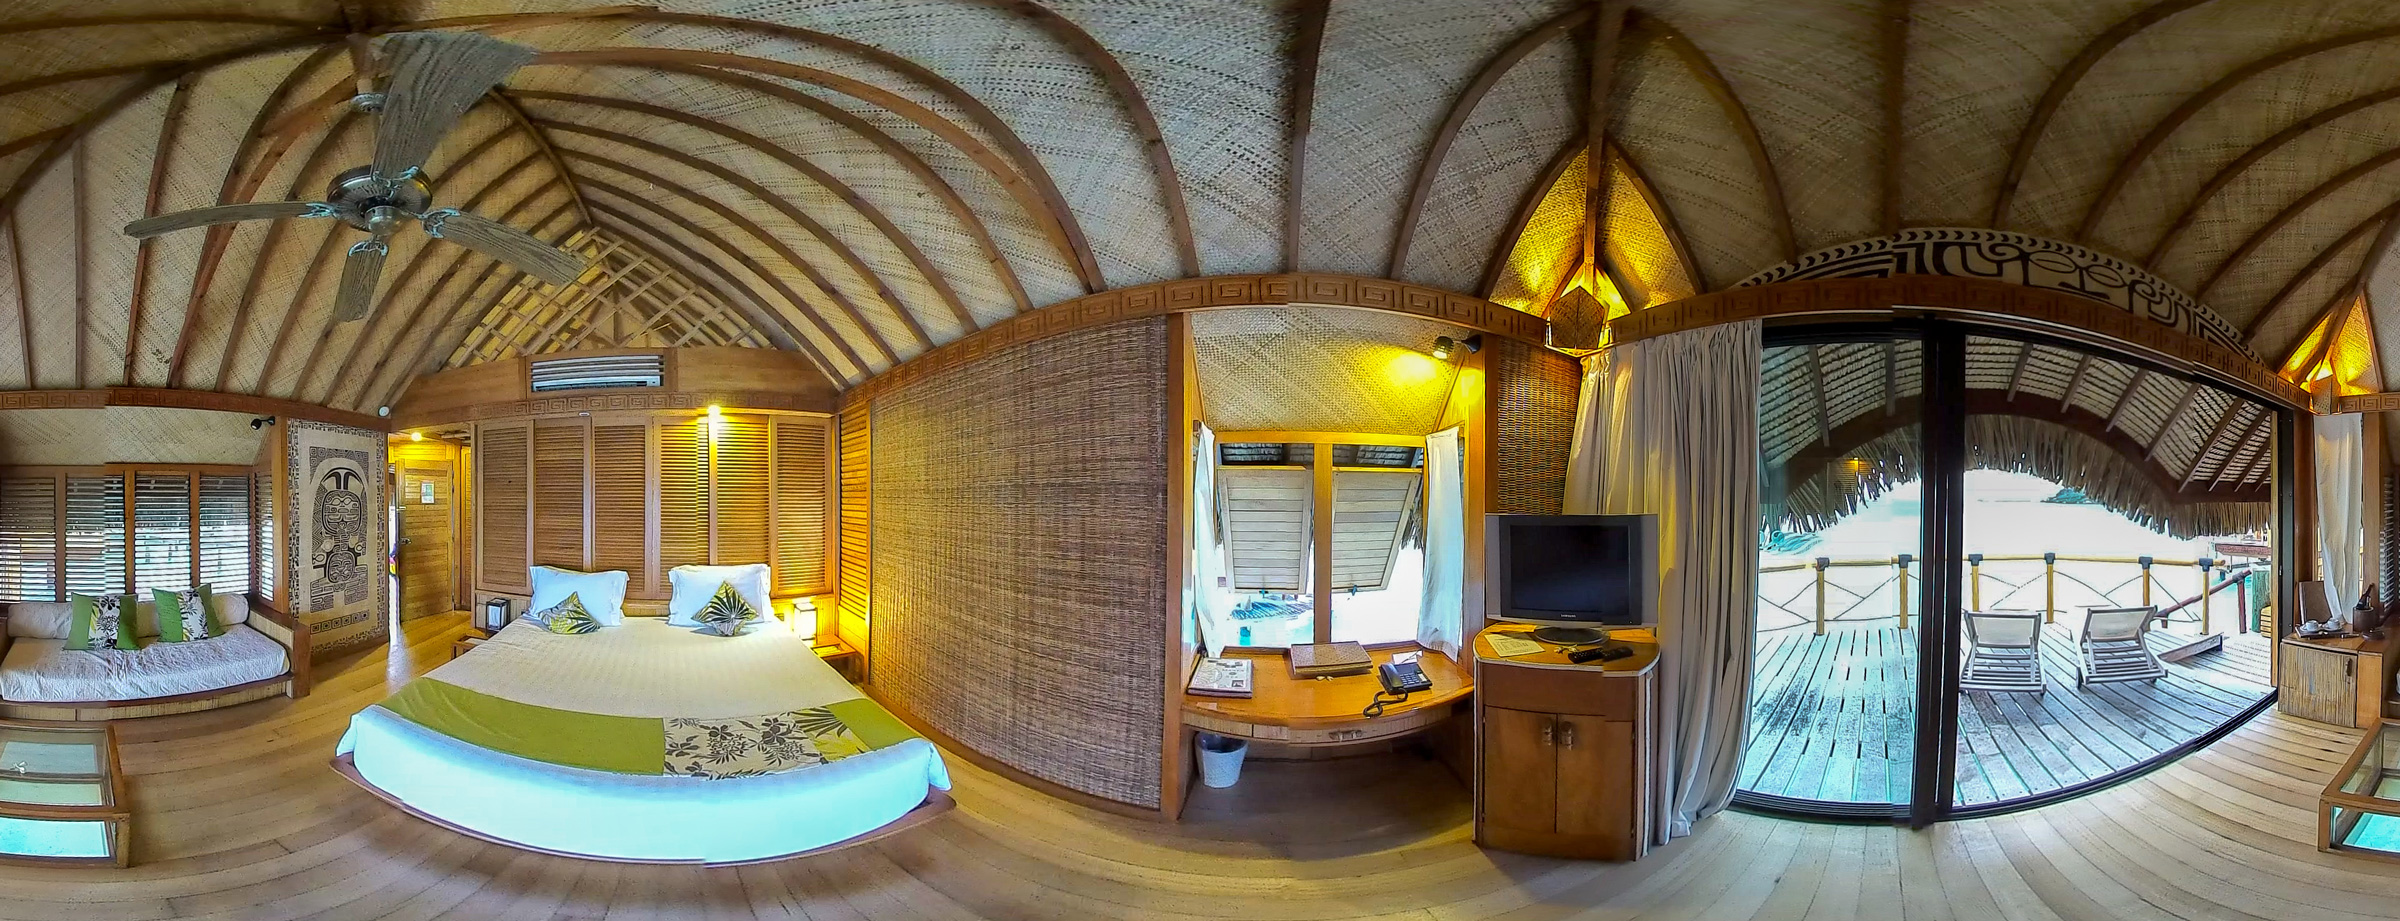 Take-The-Ride-VR_TahitiVR_Bungalow_Interior_2400px.jpg